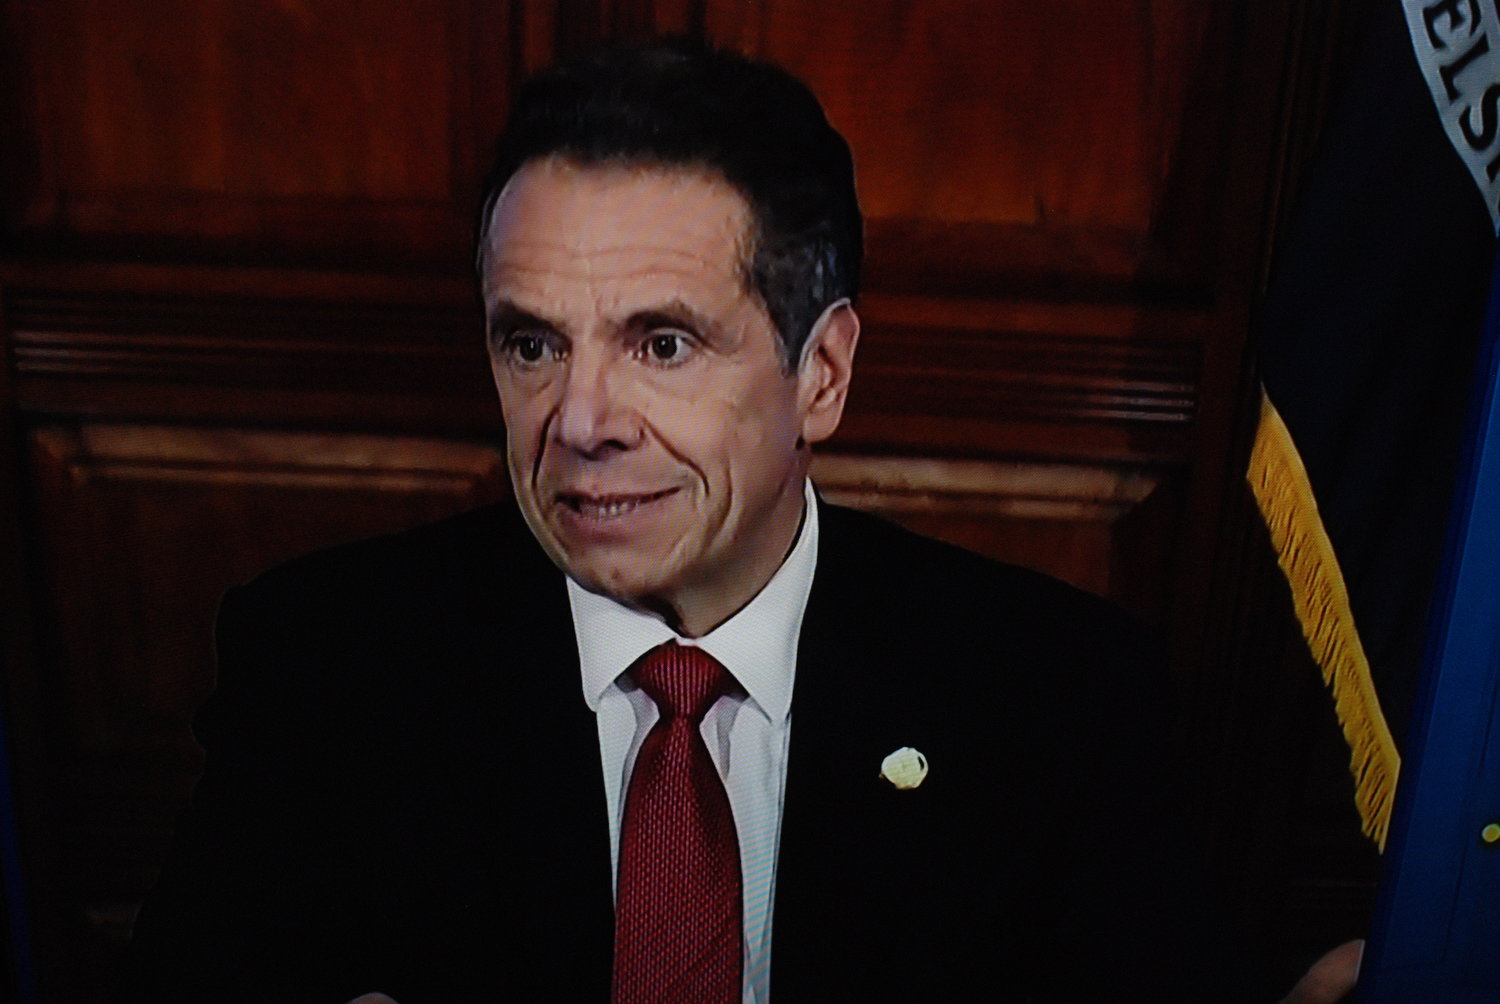 Governor Cuomo said more than 800,000 people in the NYS have filed for unemployment.